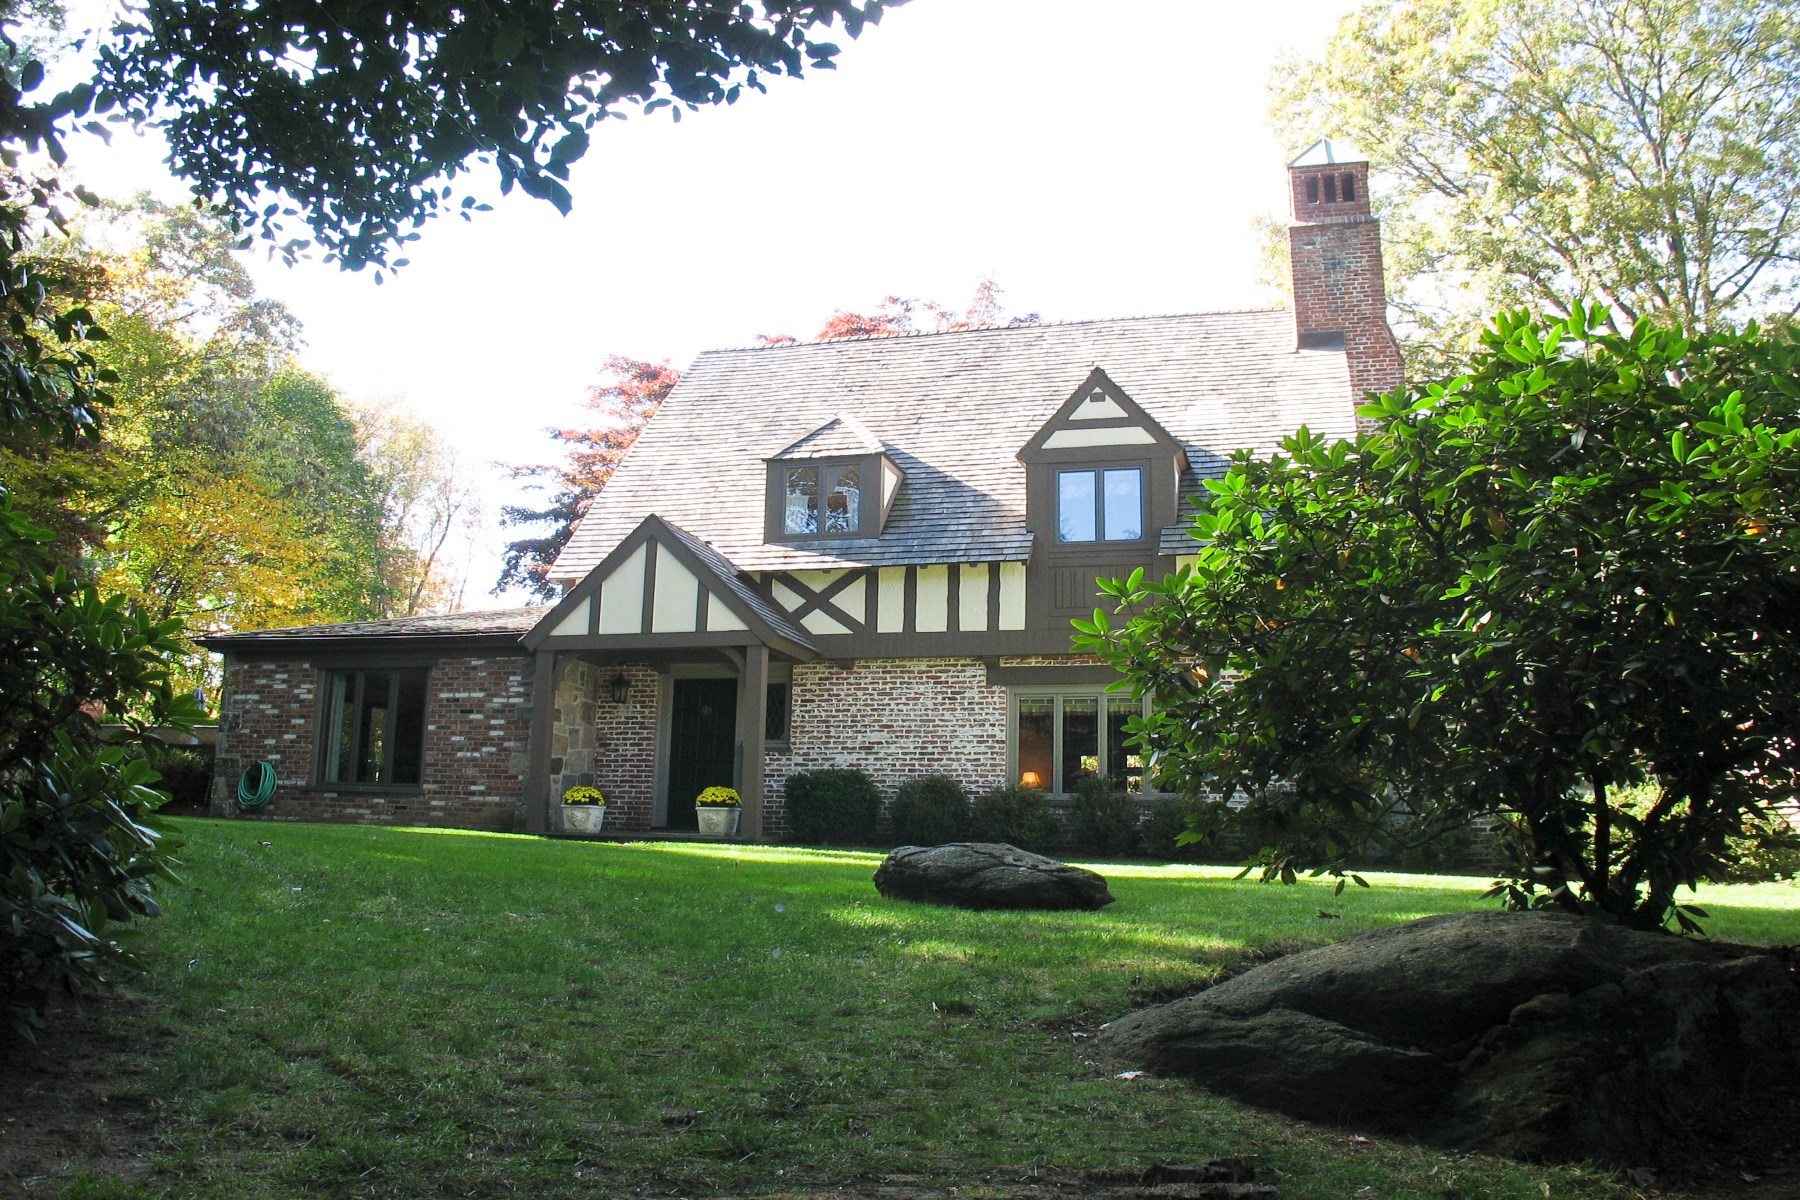 Single Family Home for Sale at 28 Upland Drive Central Greenwich, Greenwich, Connecticut 06831 United States